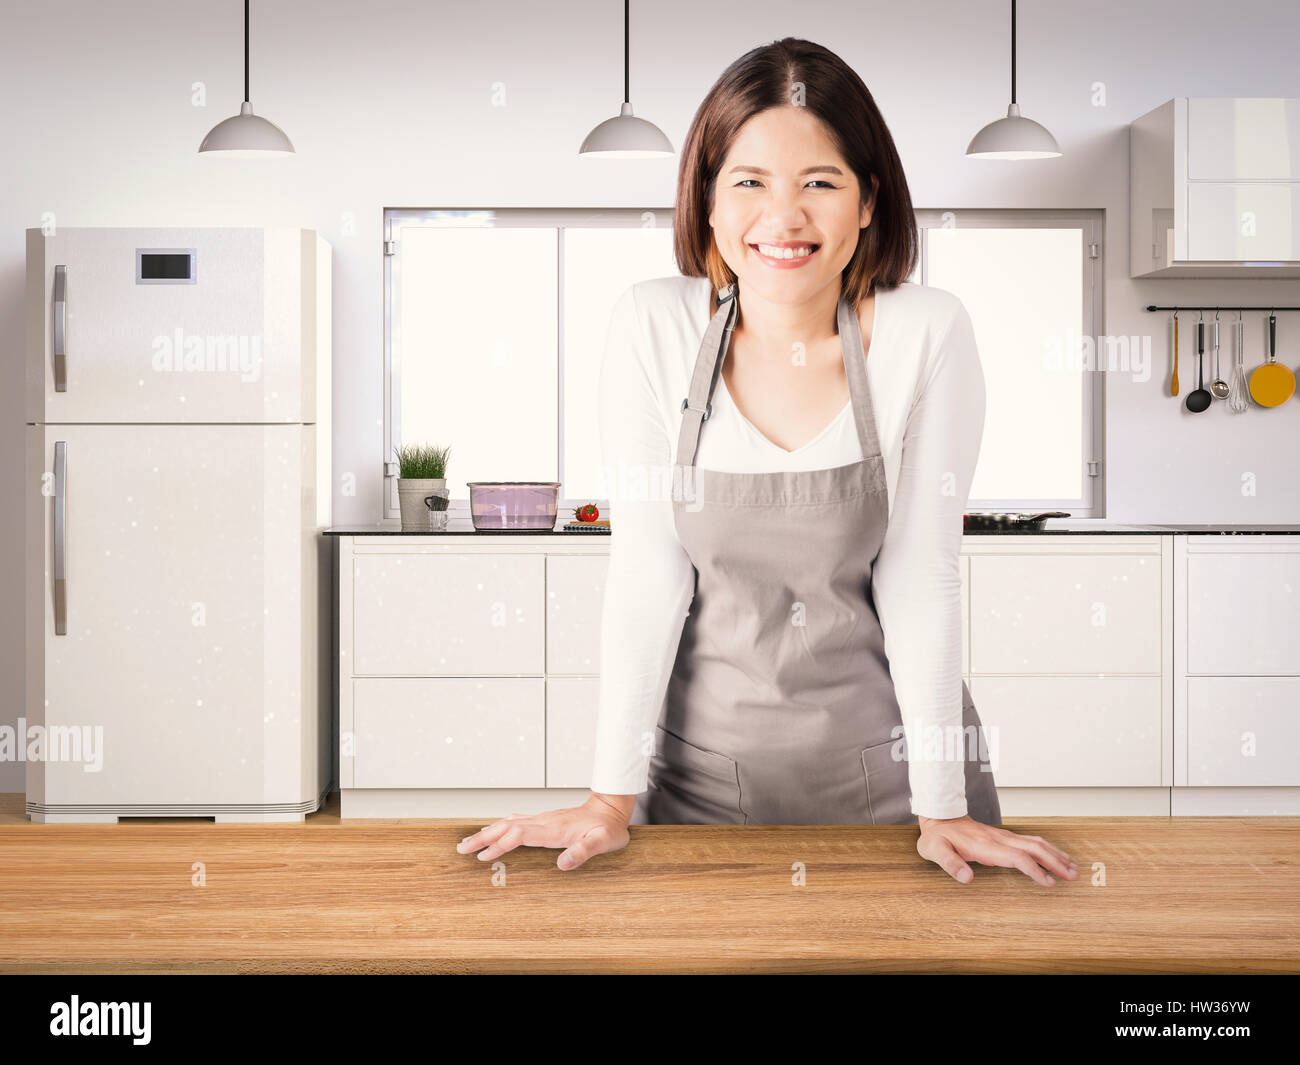 asian housekeeper with kitchen background Stock Photo: 135910317 - Alamy